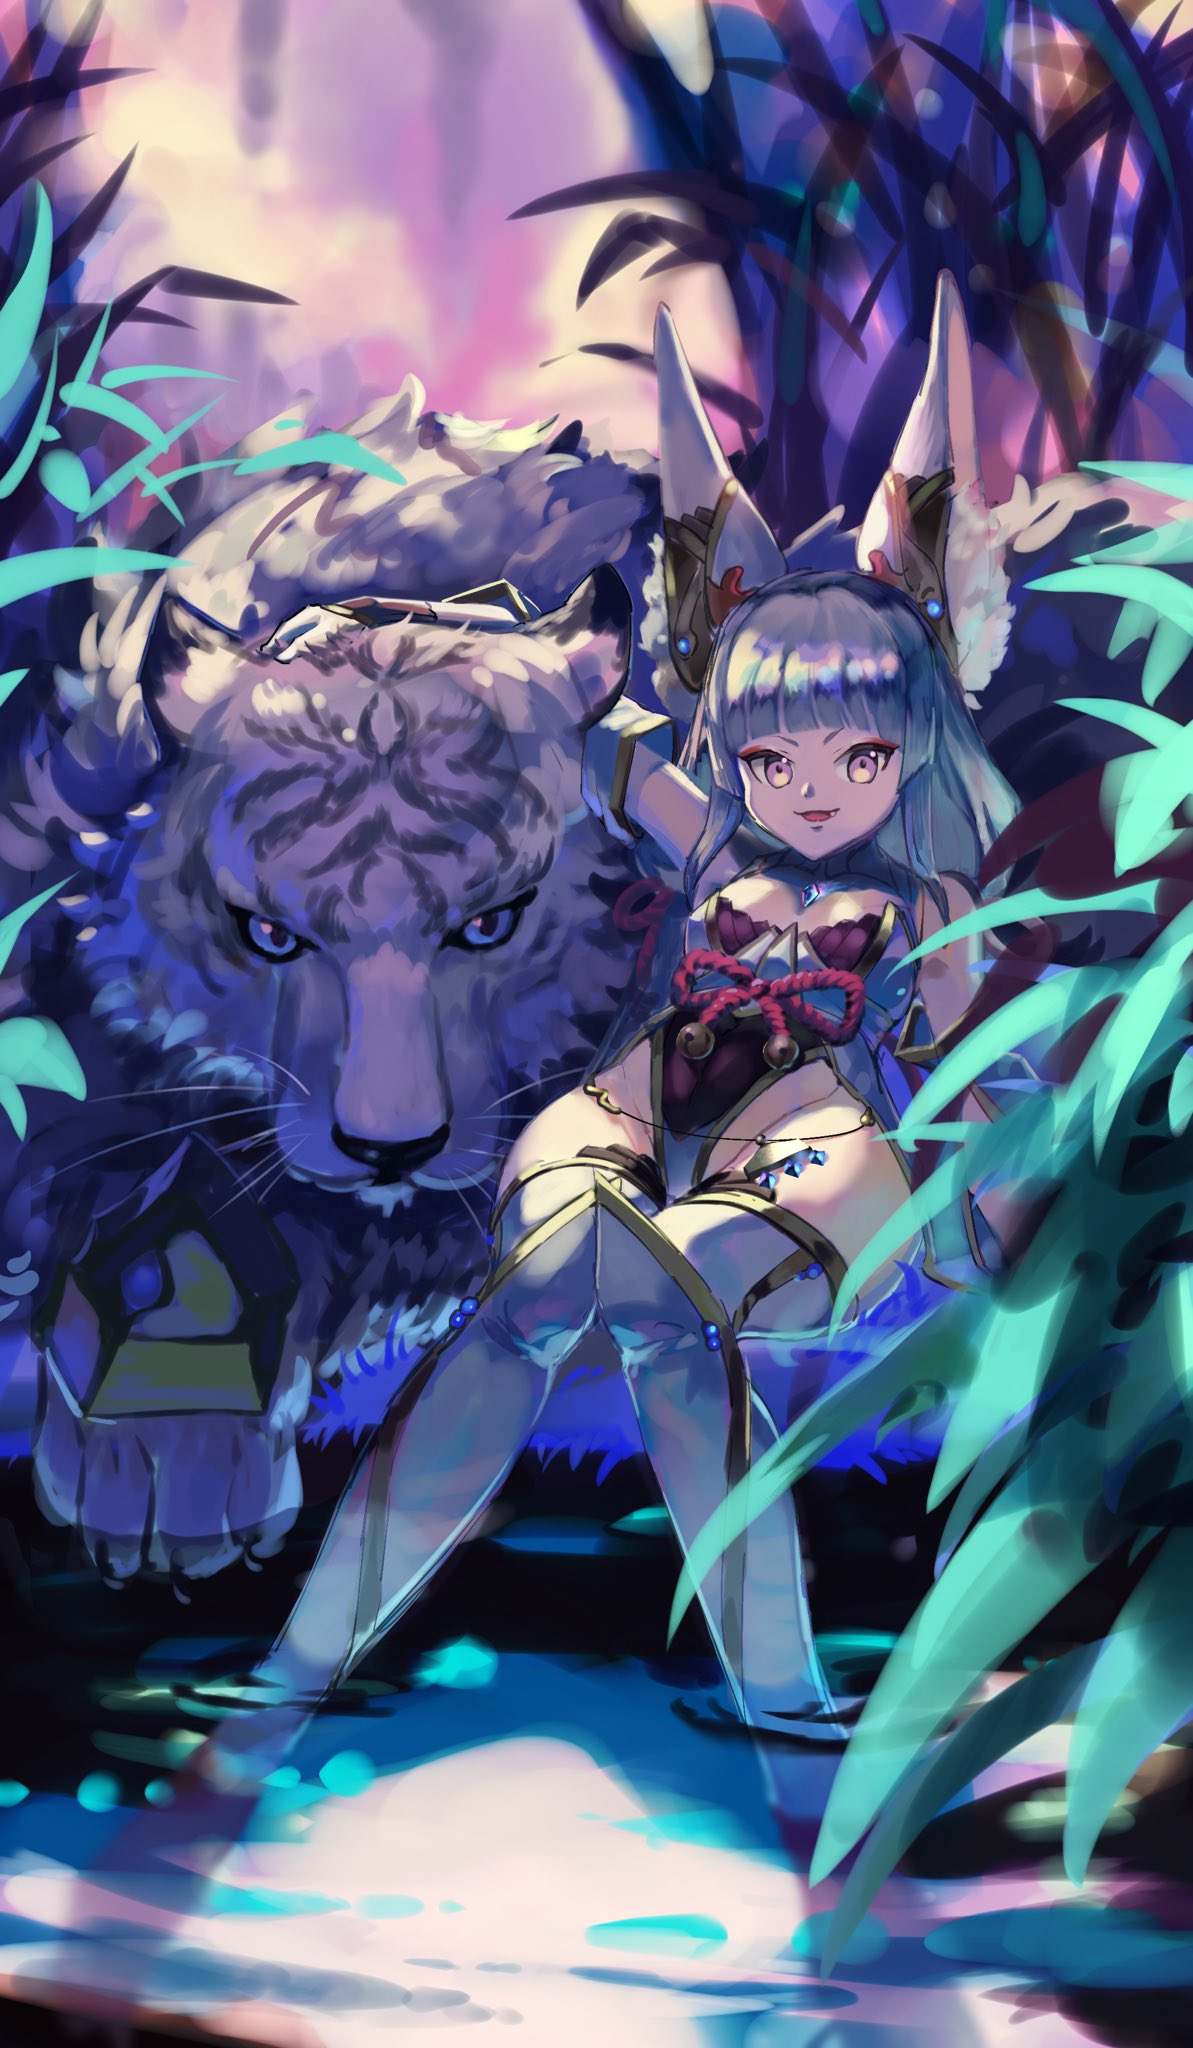 1girl animal_ears bangs bare_shoulders blunt_bangs breasts byakko_(xenoblade) detached_sleeves fang highleg highleg_leotard highres leotard night niyah niyah_(blade) outdoors pito_(pitosan) plant silver_hair small_breasts soaking_feet thigh-highs tiger white_tiger xenoblade_(series) xenoblade_2